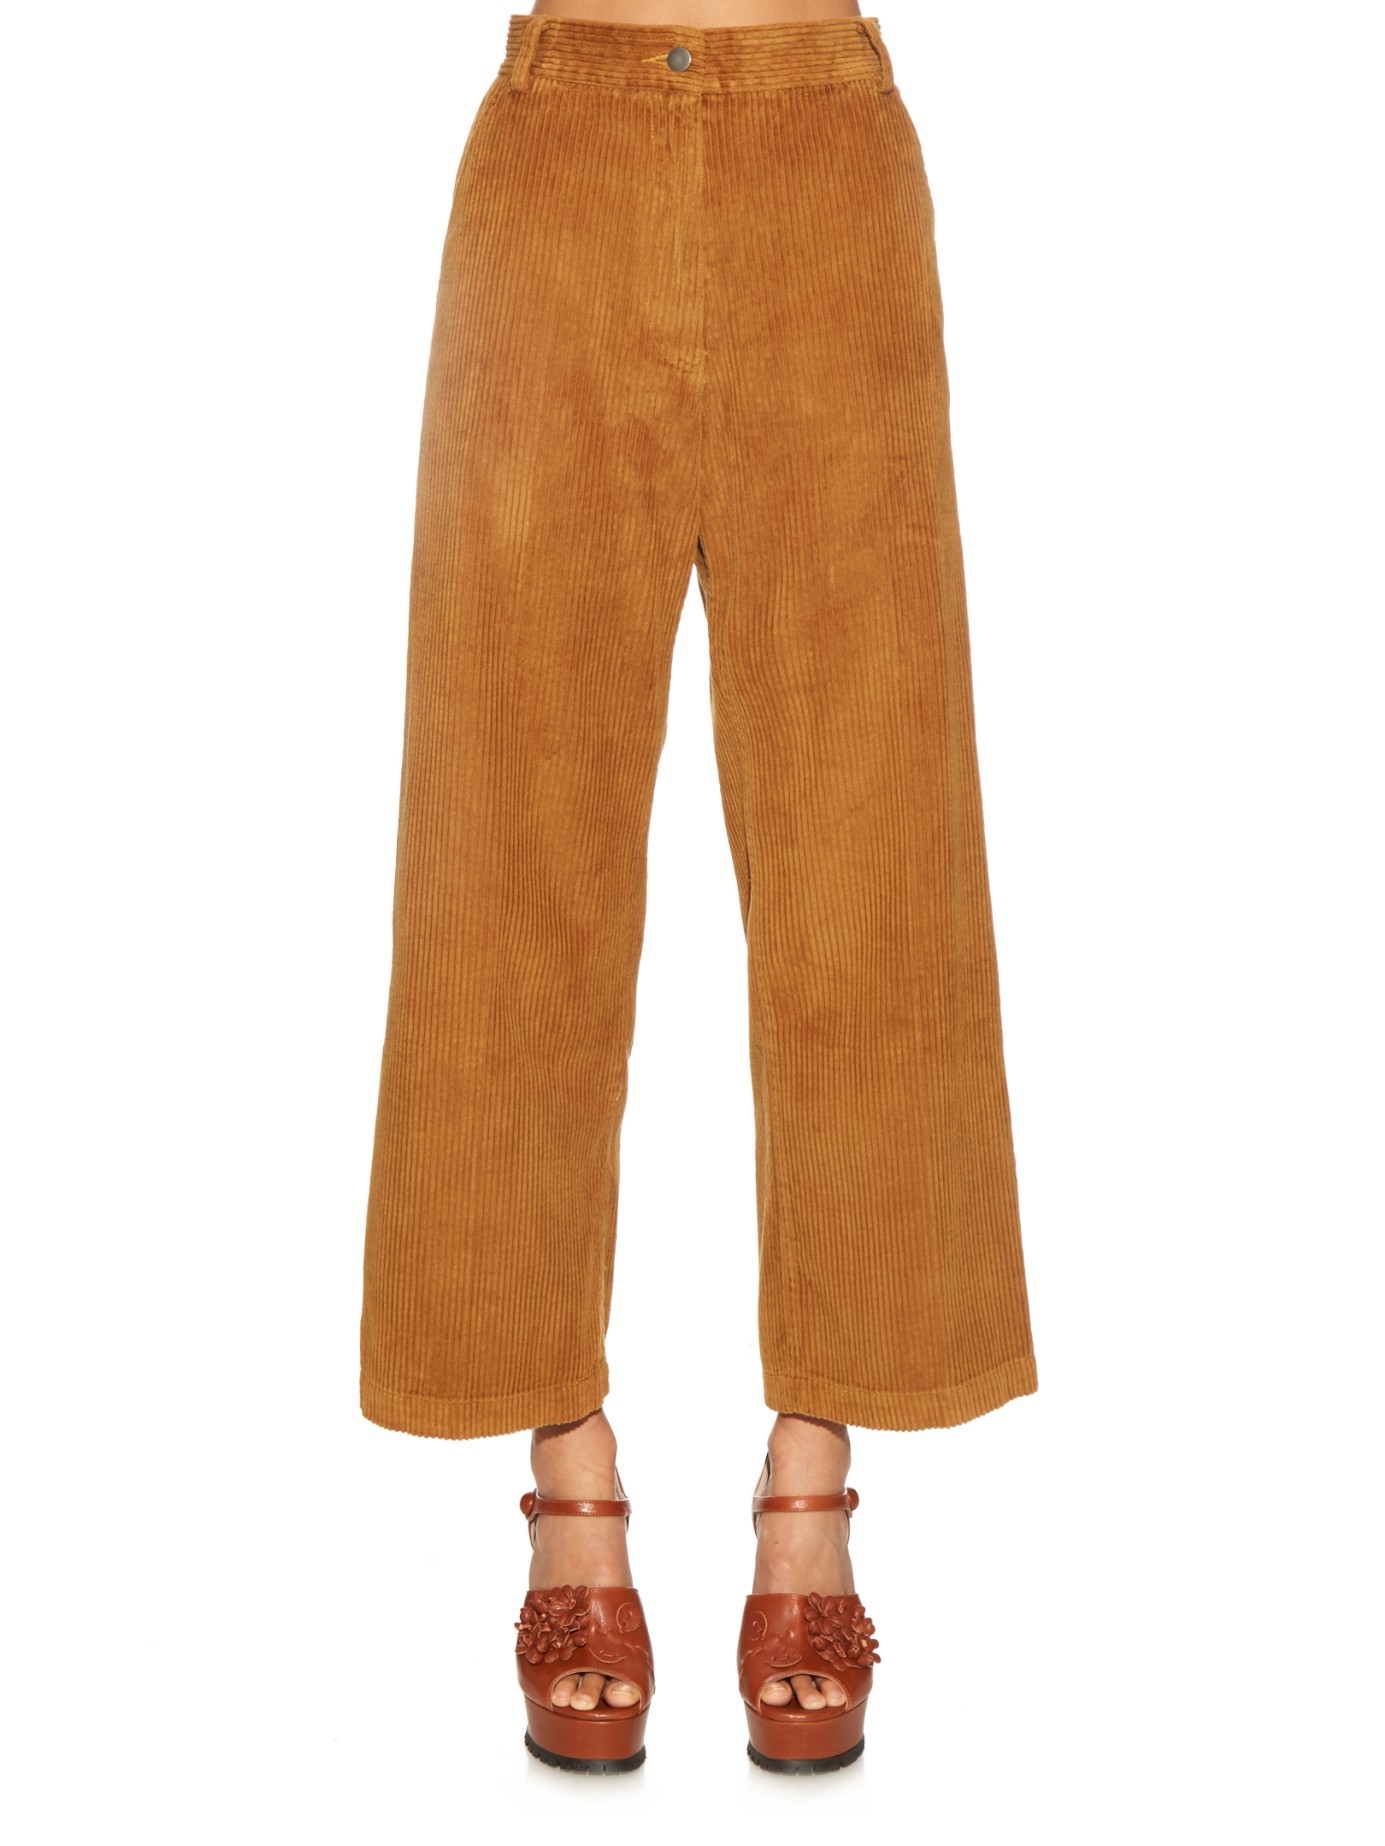 5f2b8cbcefab79 Wide Wale Corduroy Pants Womens - Best Style Pants Man And Woman